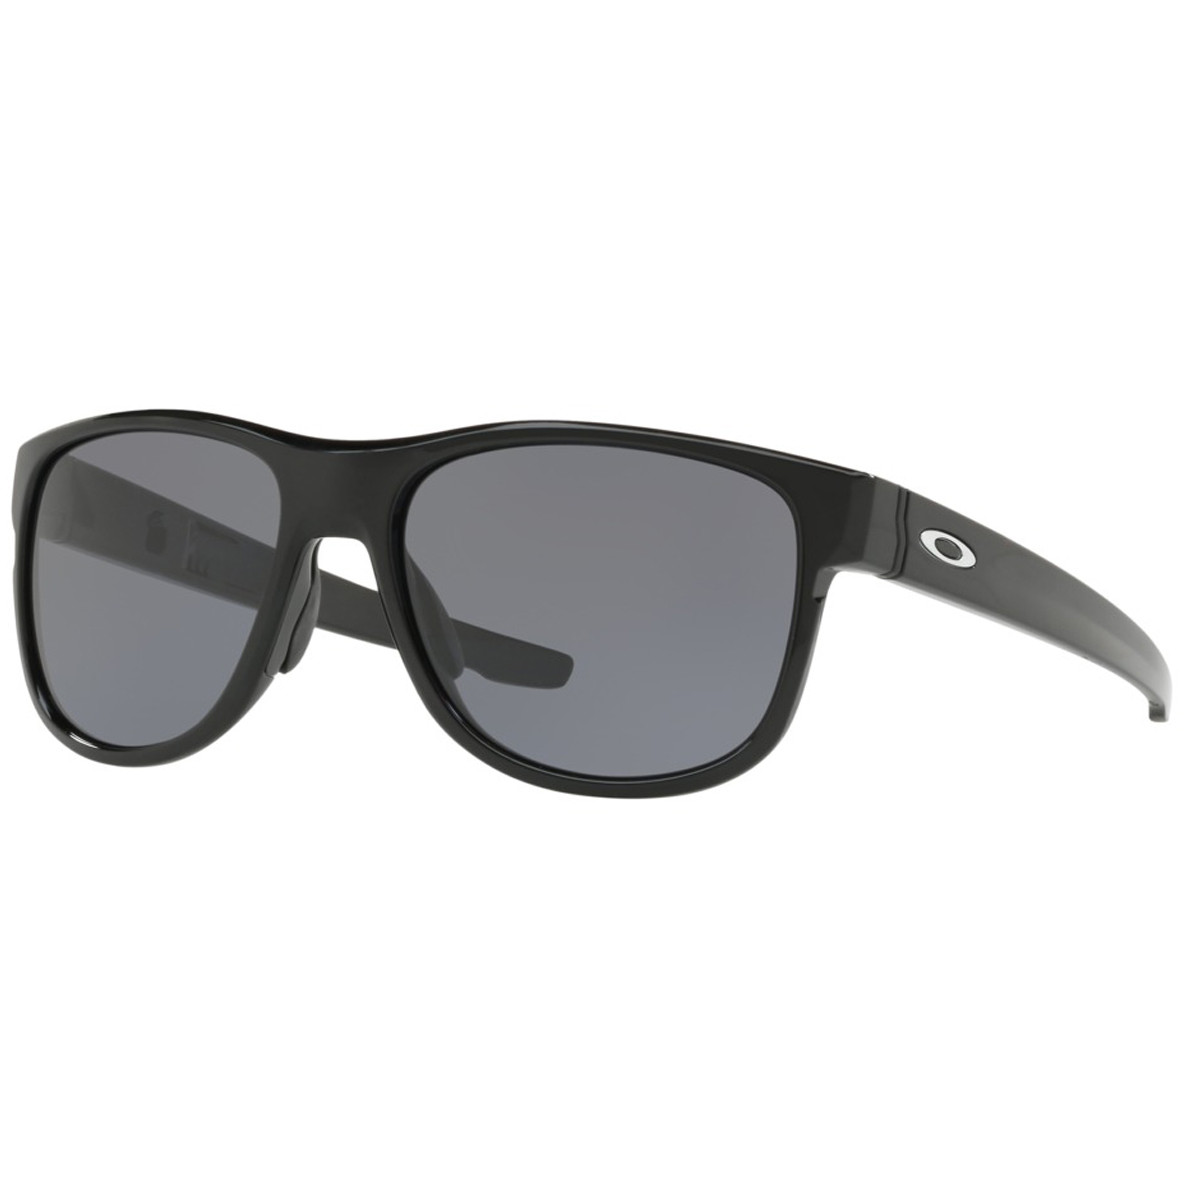 Óculos Oakley Crossrange R Polished Black Com Grey Lens ref OO9359-01 1fb4c30e82